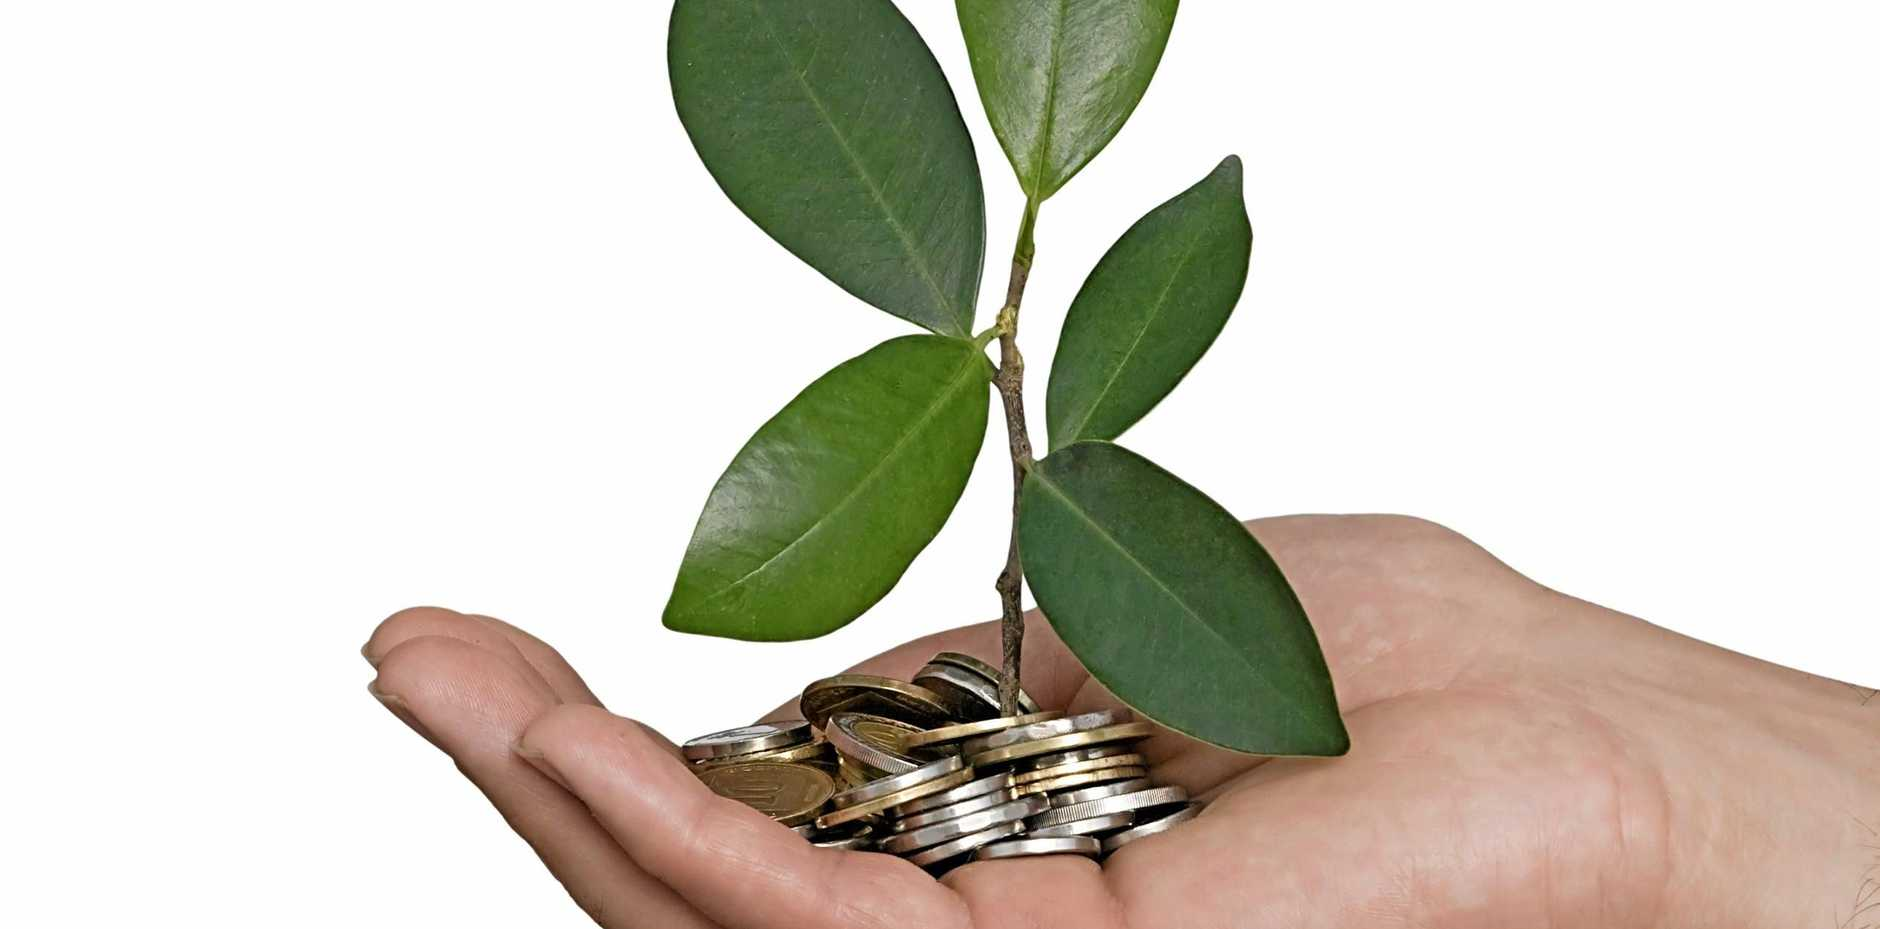 SMART MONEY: Action can pay off both for saving and making money.